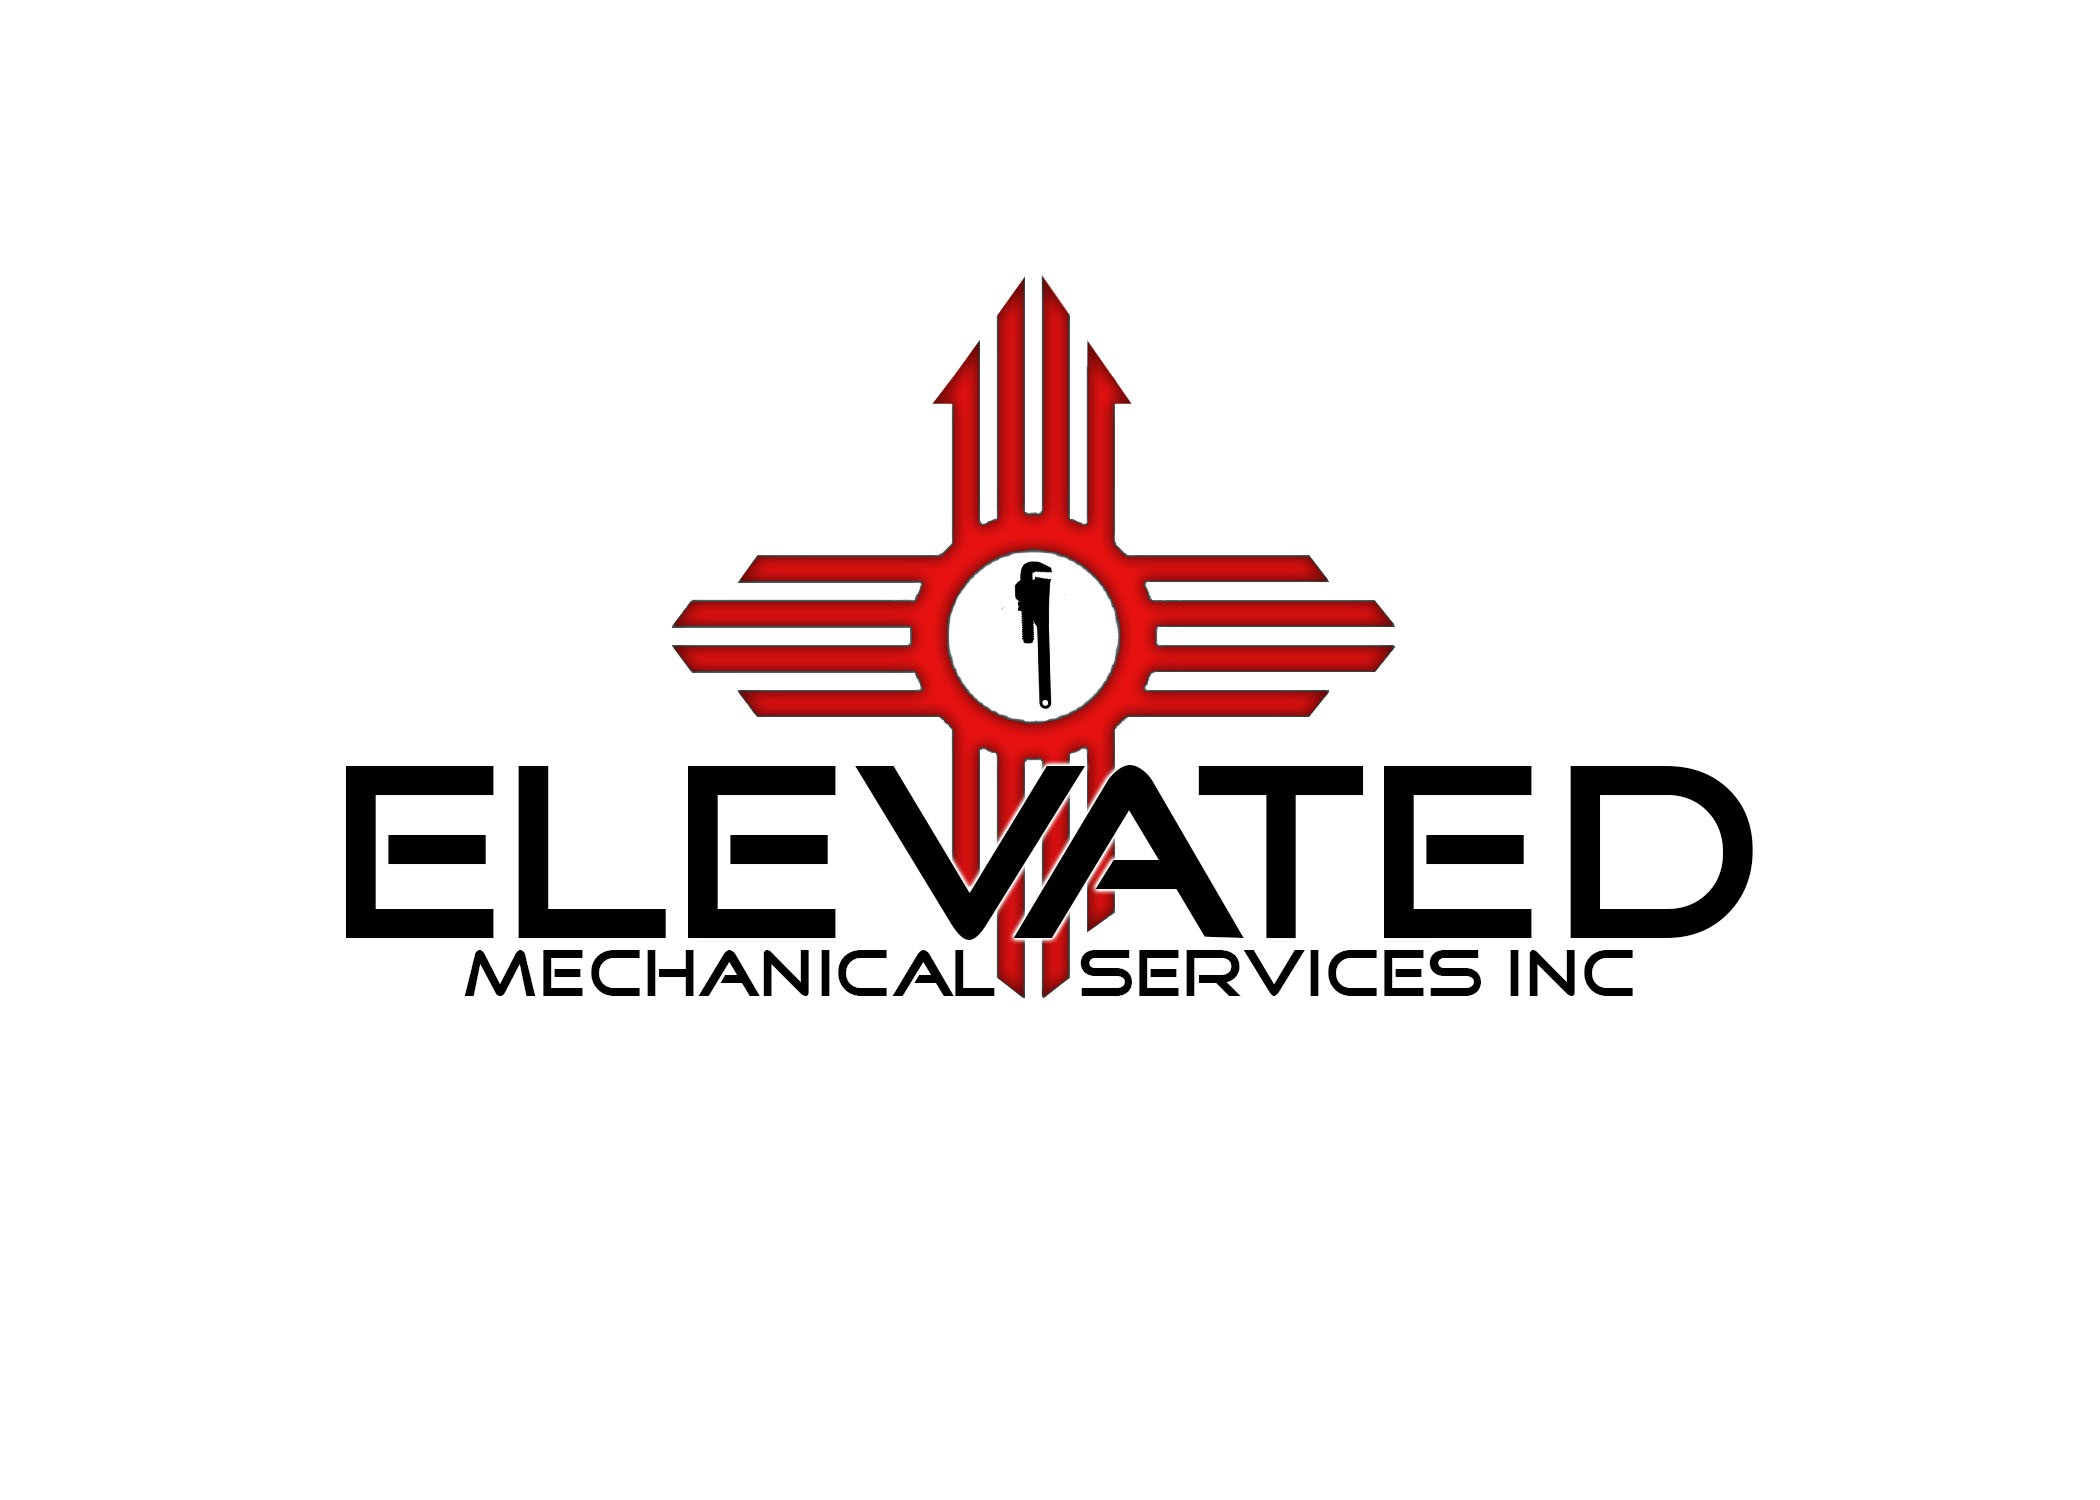 Elevated Mechanical Service Inc logo